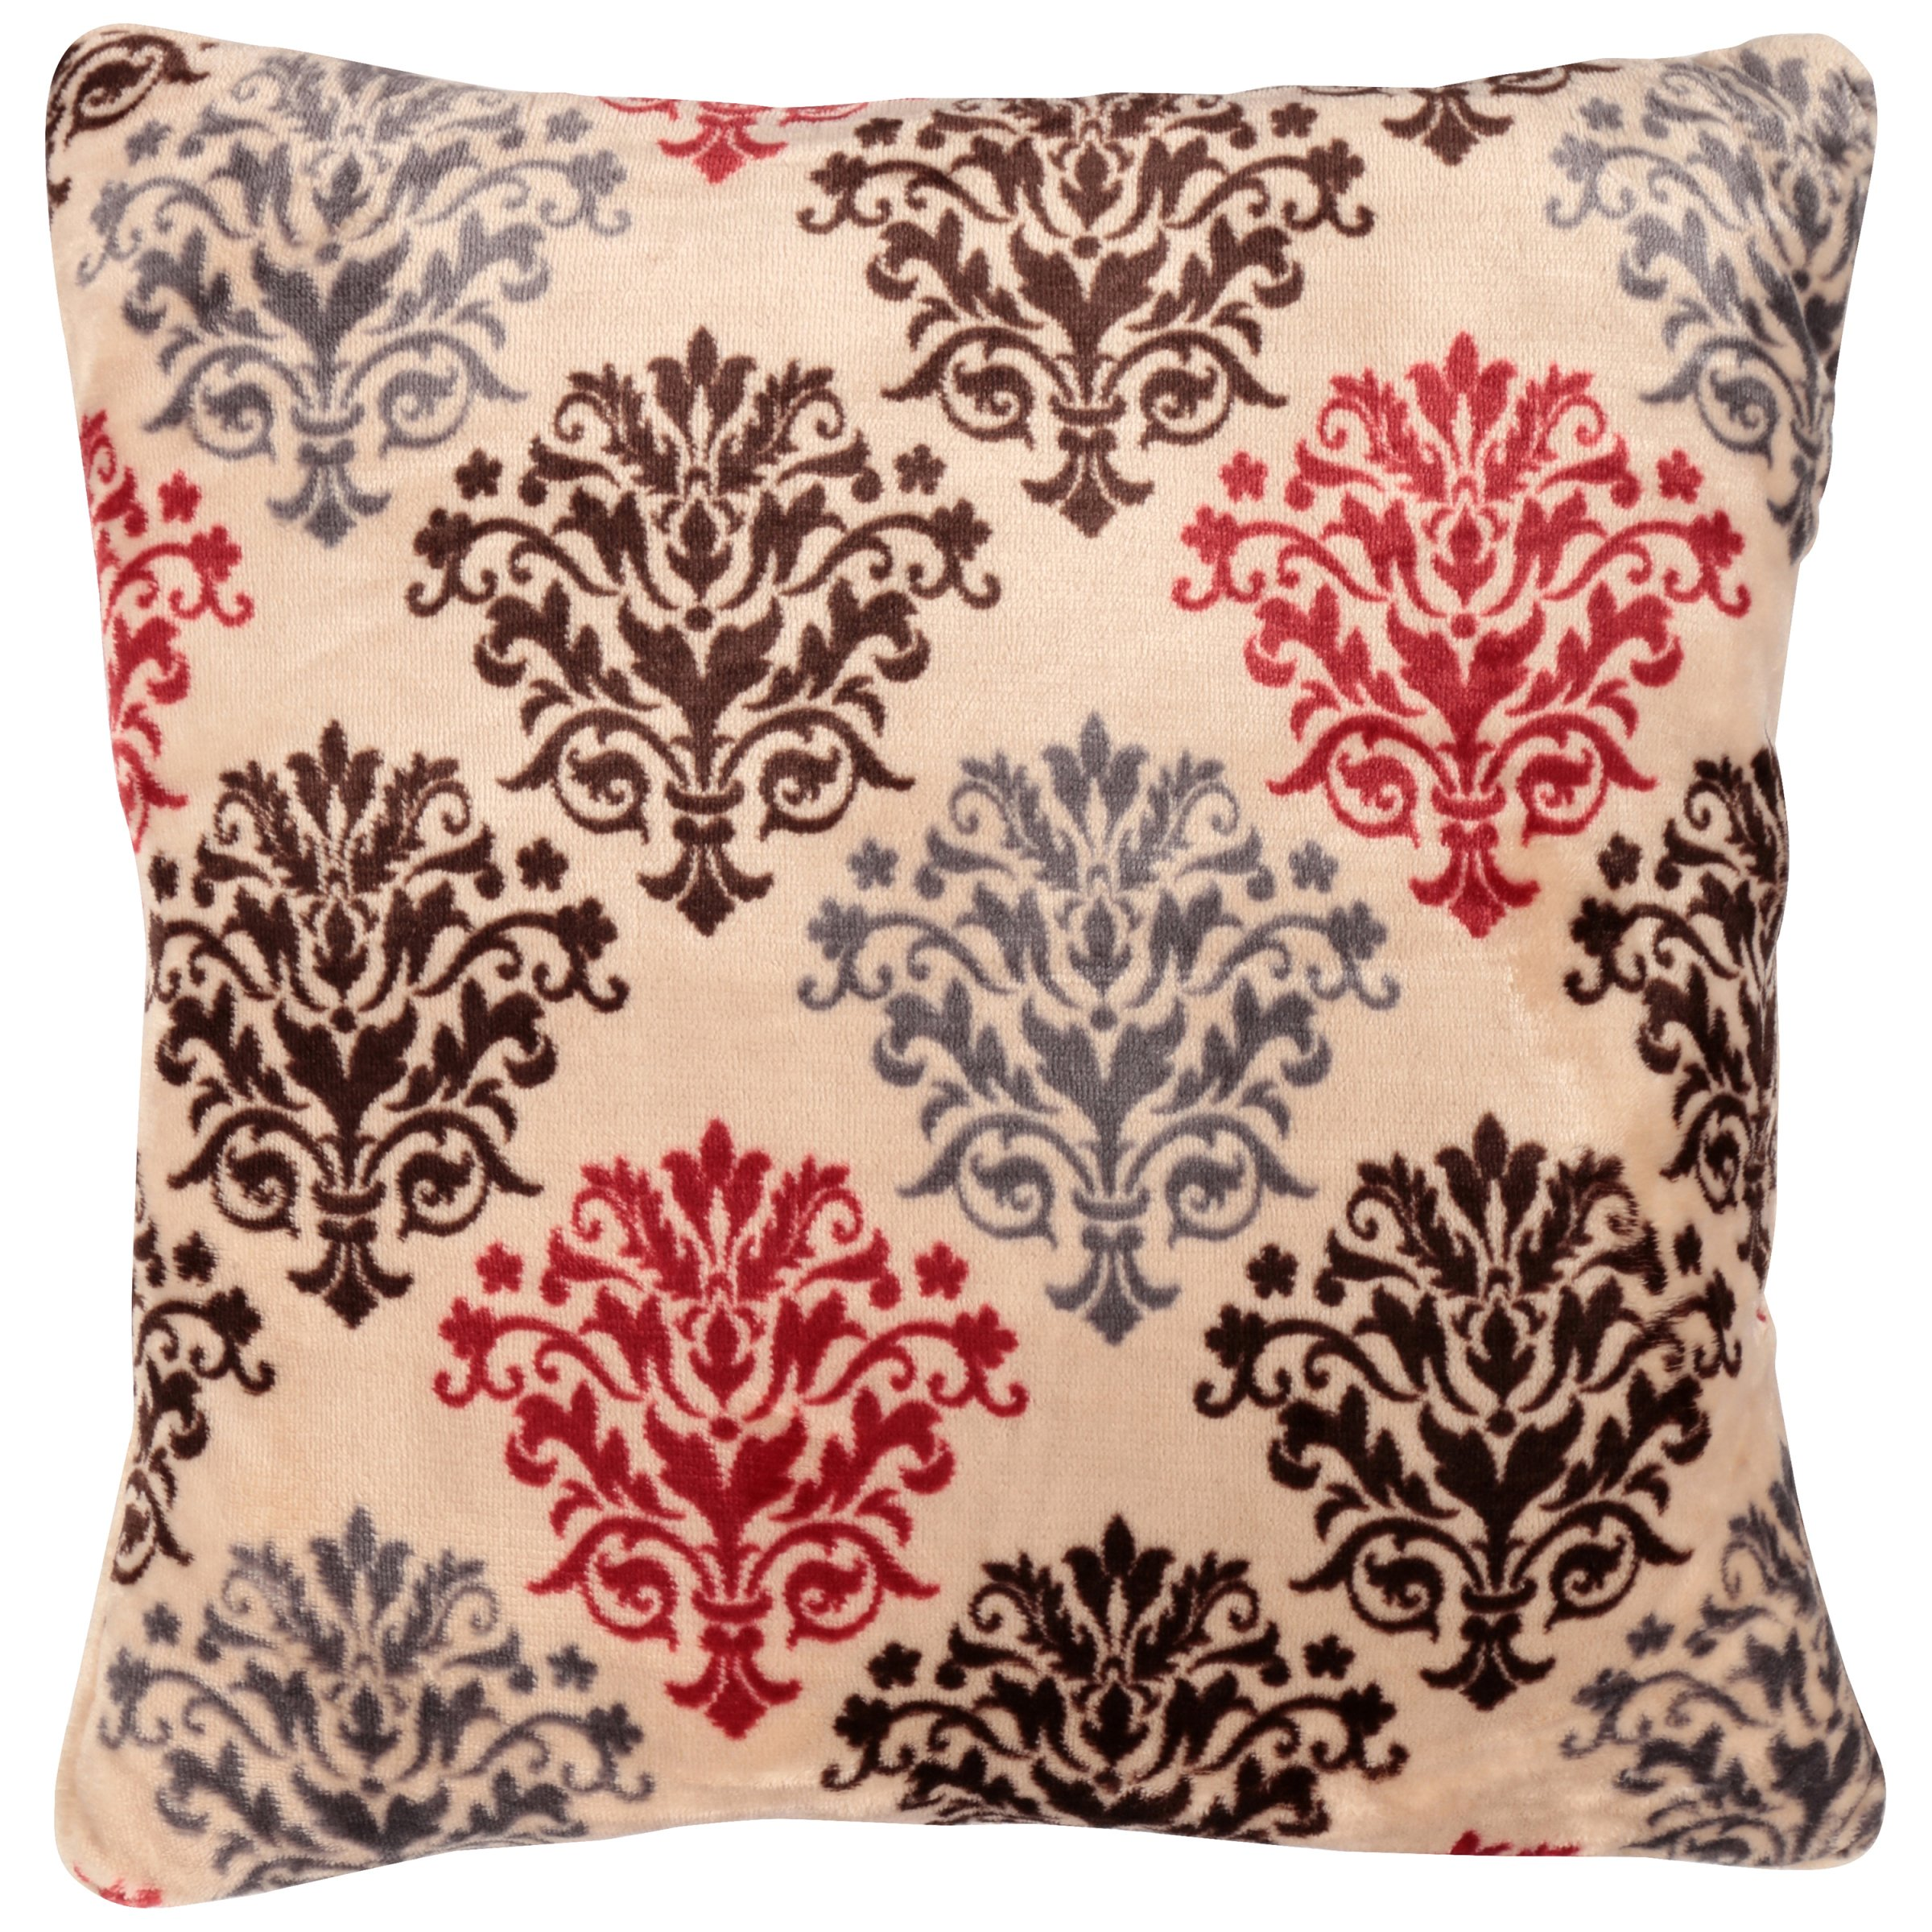 Mainstays™ Brown/Red Medallion Throw Pillows 2 ct Pack